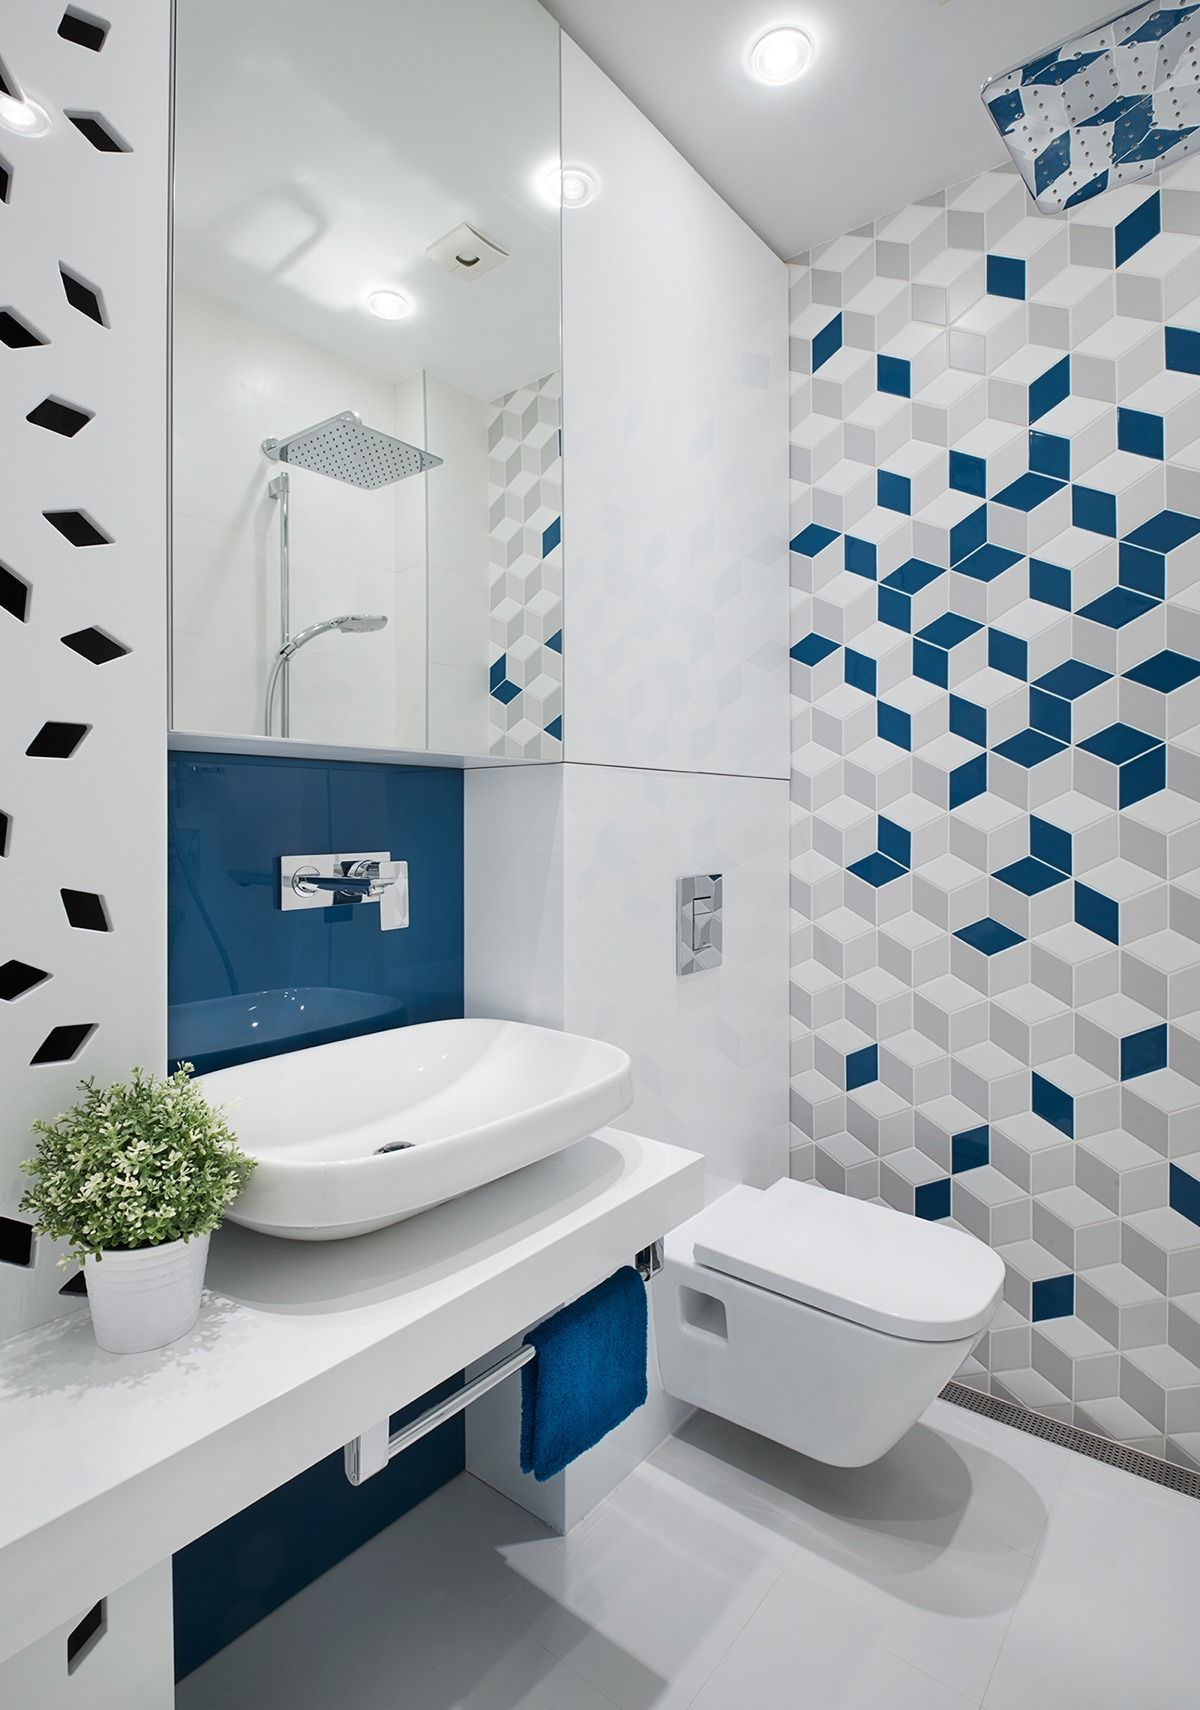 Washroom Tiles A Mid Century Inspired Apartment With Modern Geometric Accents J